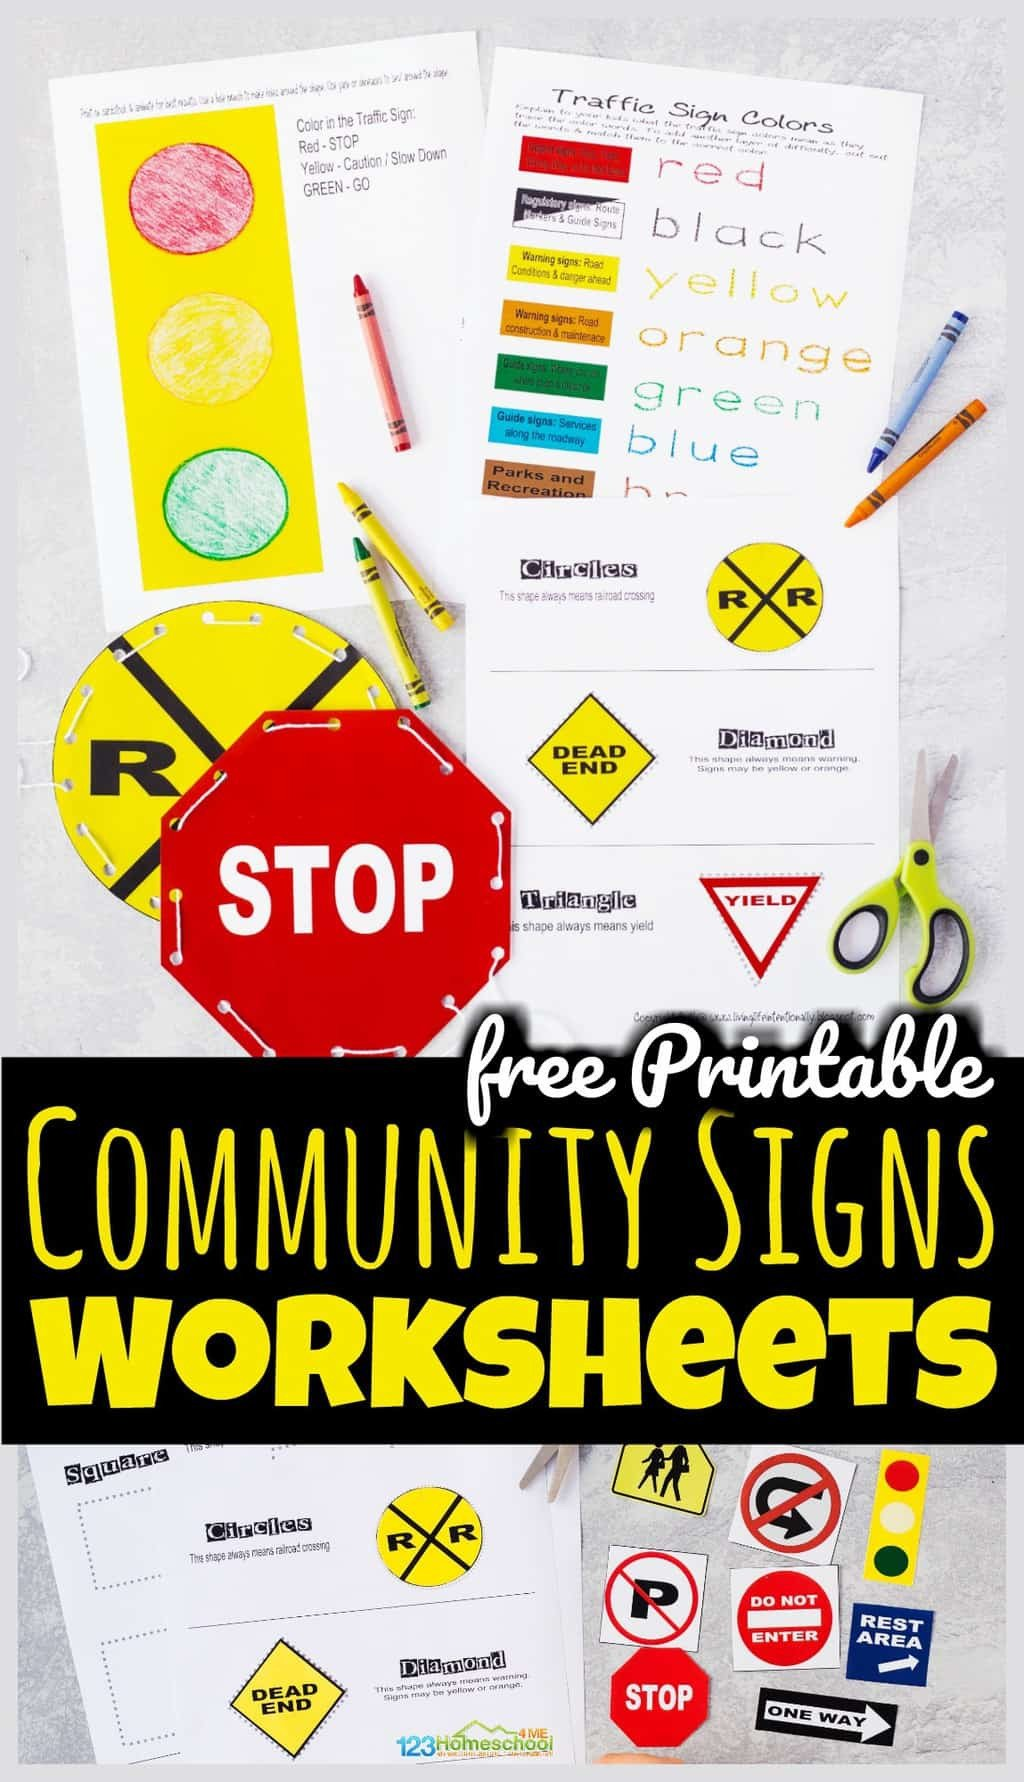 Safety Signs Worksheets Free Free Printable Munity Signs Worksheets